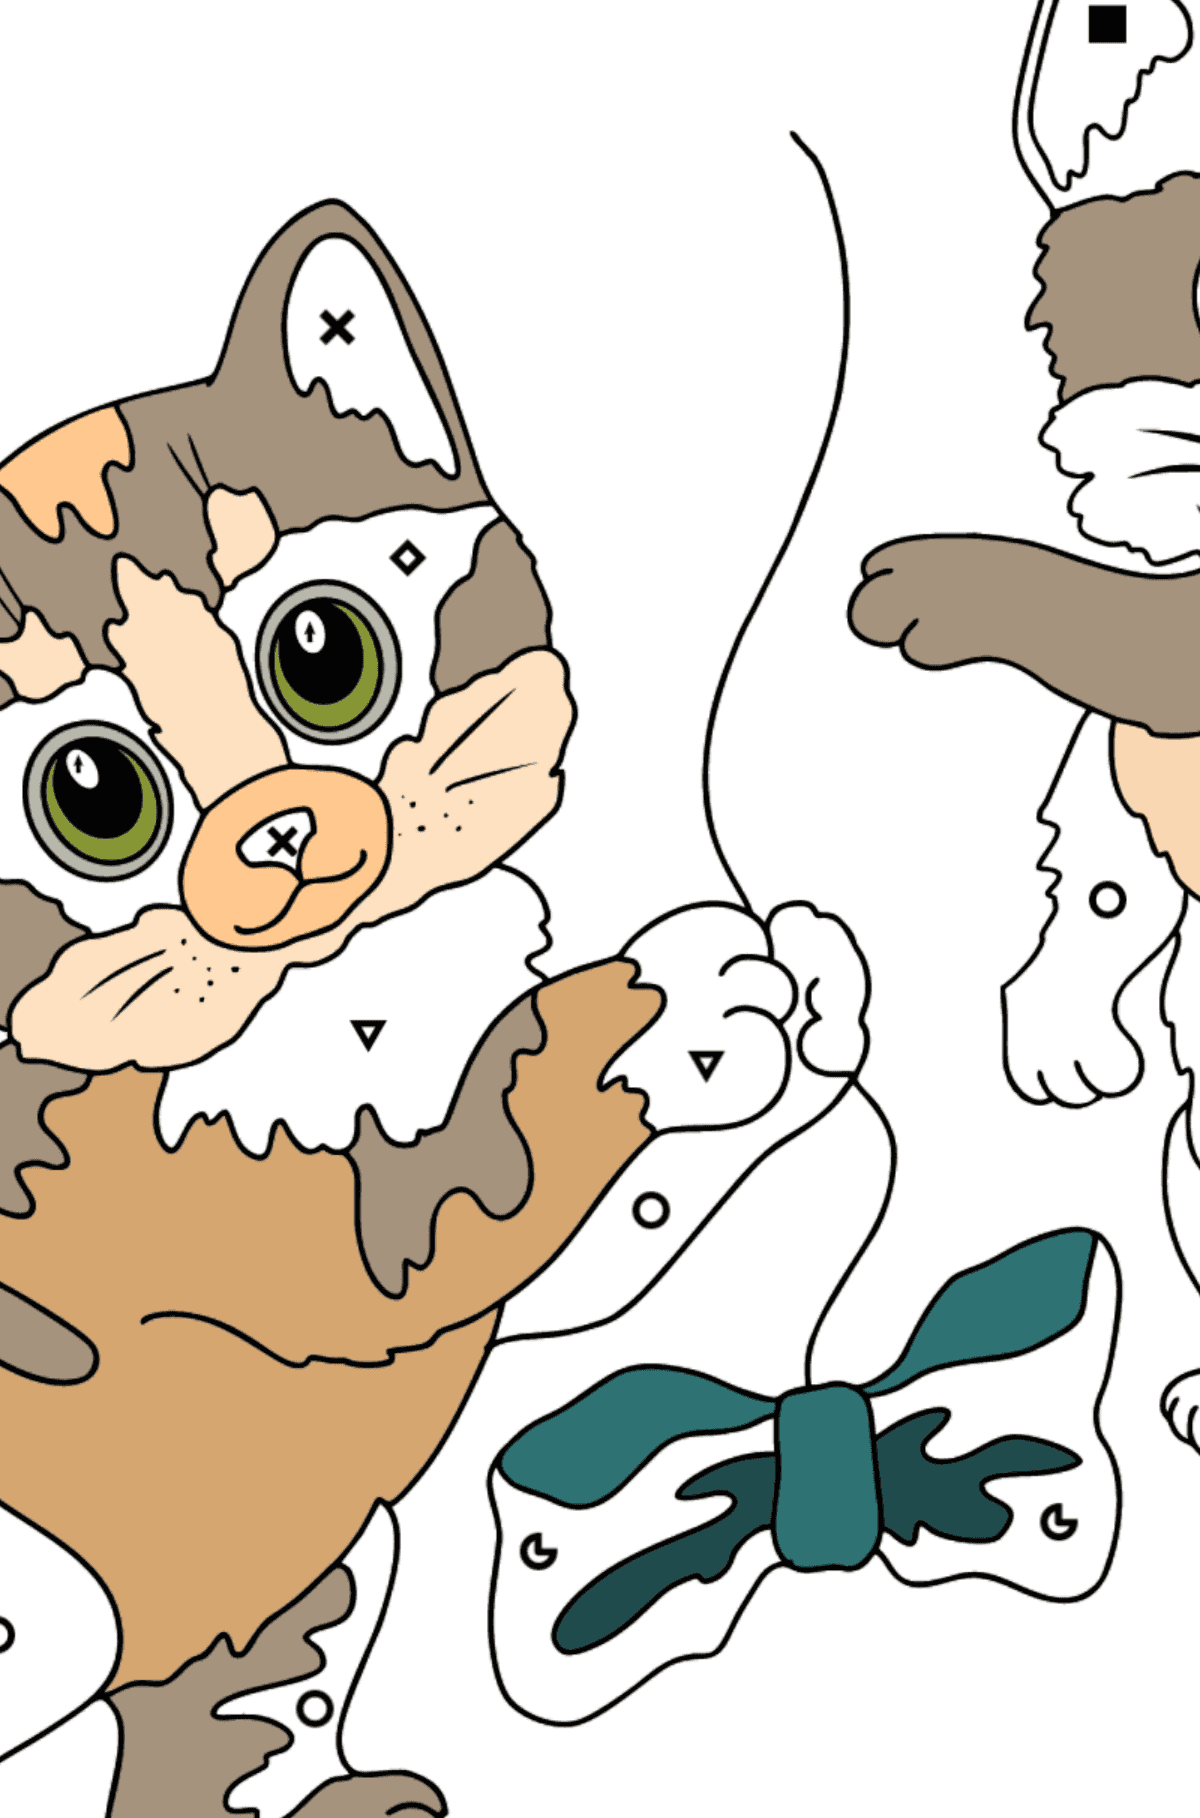 Coloring Page - Kittens are Jumping with Bows - Coloring by Symbols and Geometric Shapes for Kids